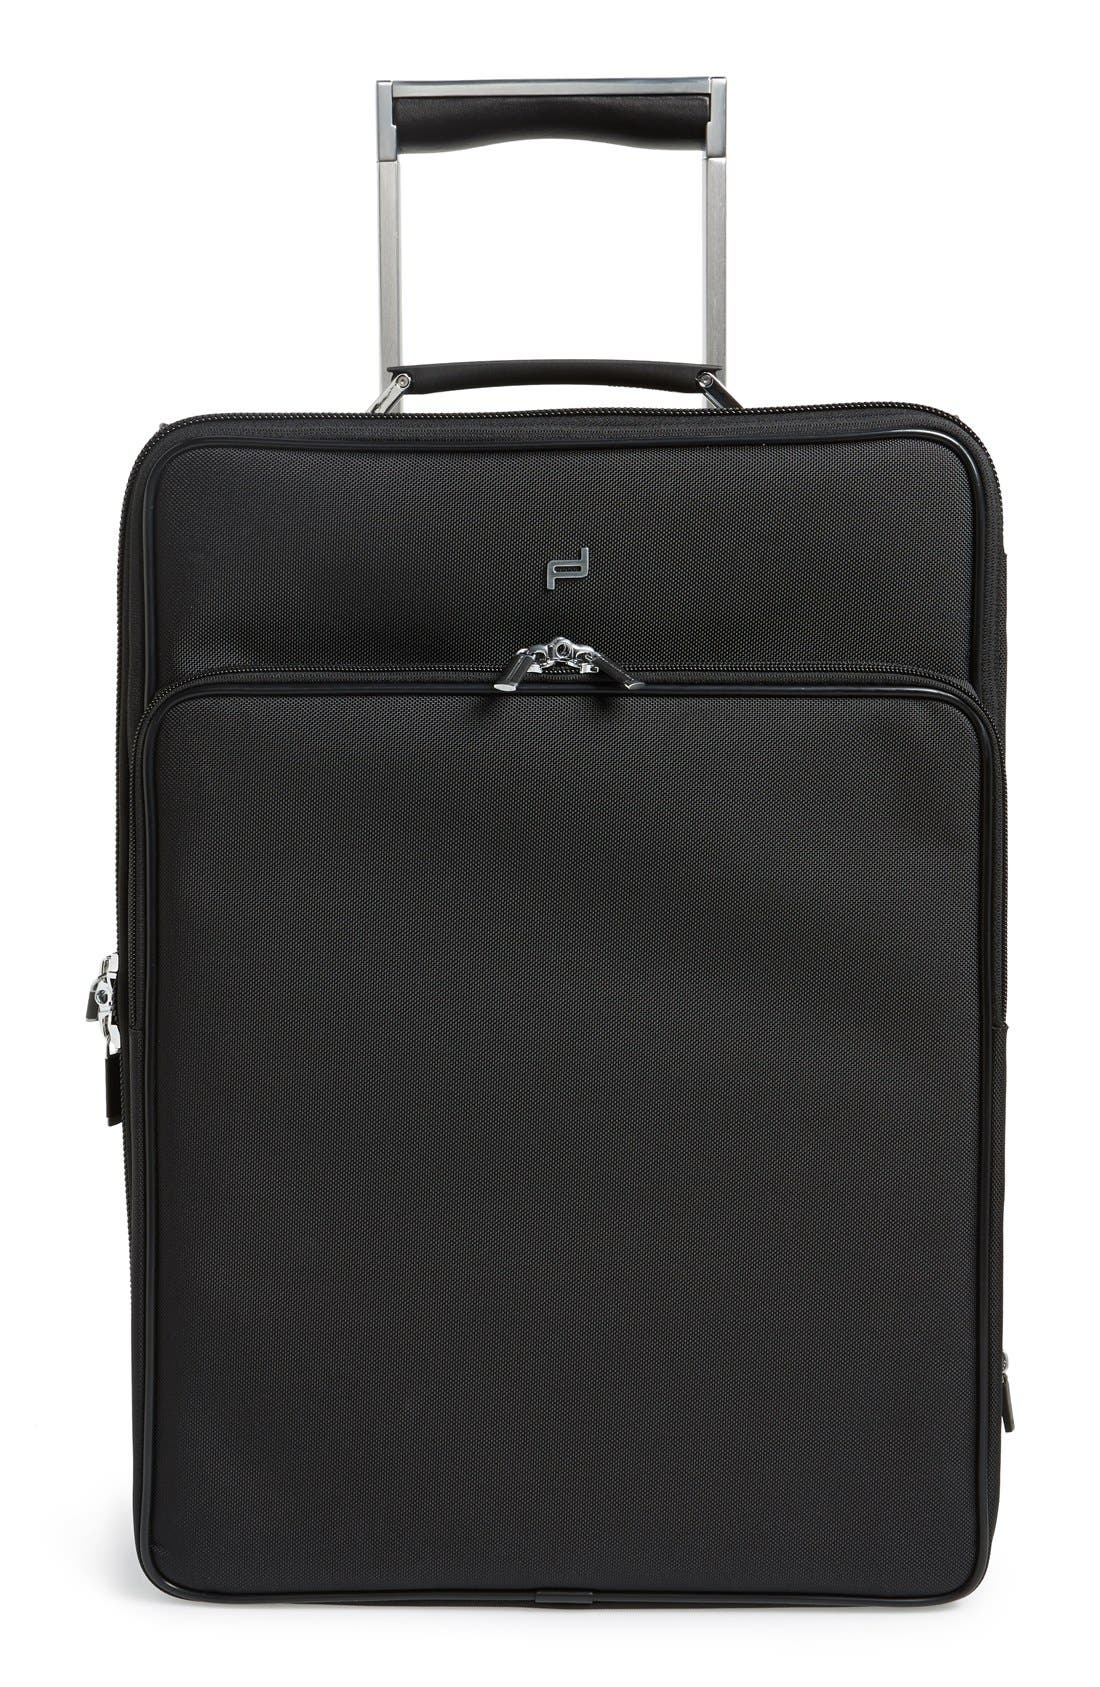 Alternate Image 1 Selected - Porsche Design 'Roadster 3.0' Wheeled Carry-On (20 inch)